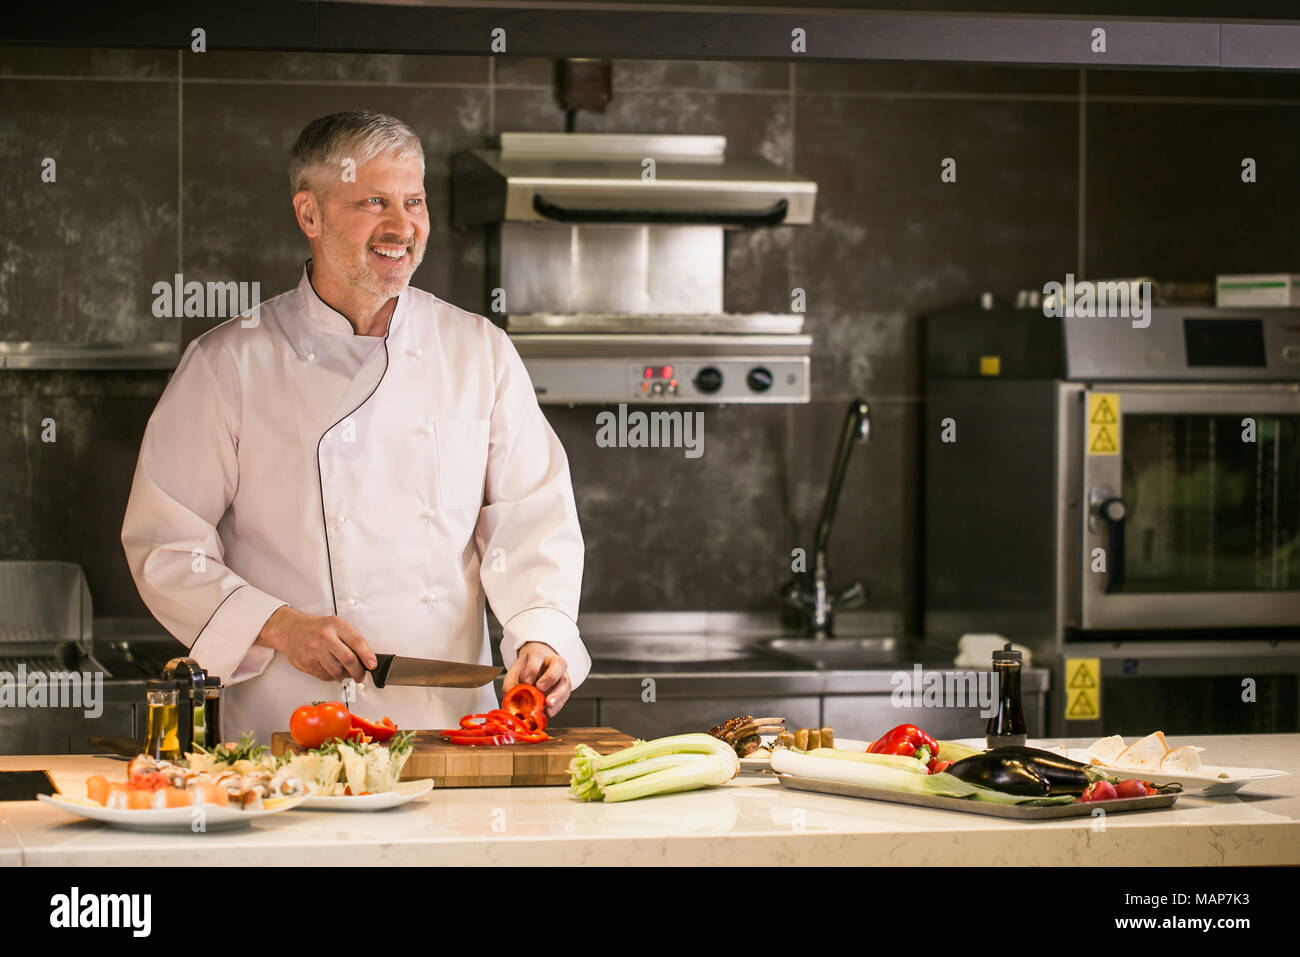 happy old cook with grey hair is preparing a meal with pleasure - Stock Image